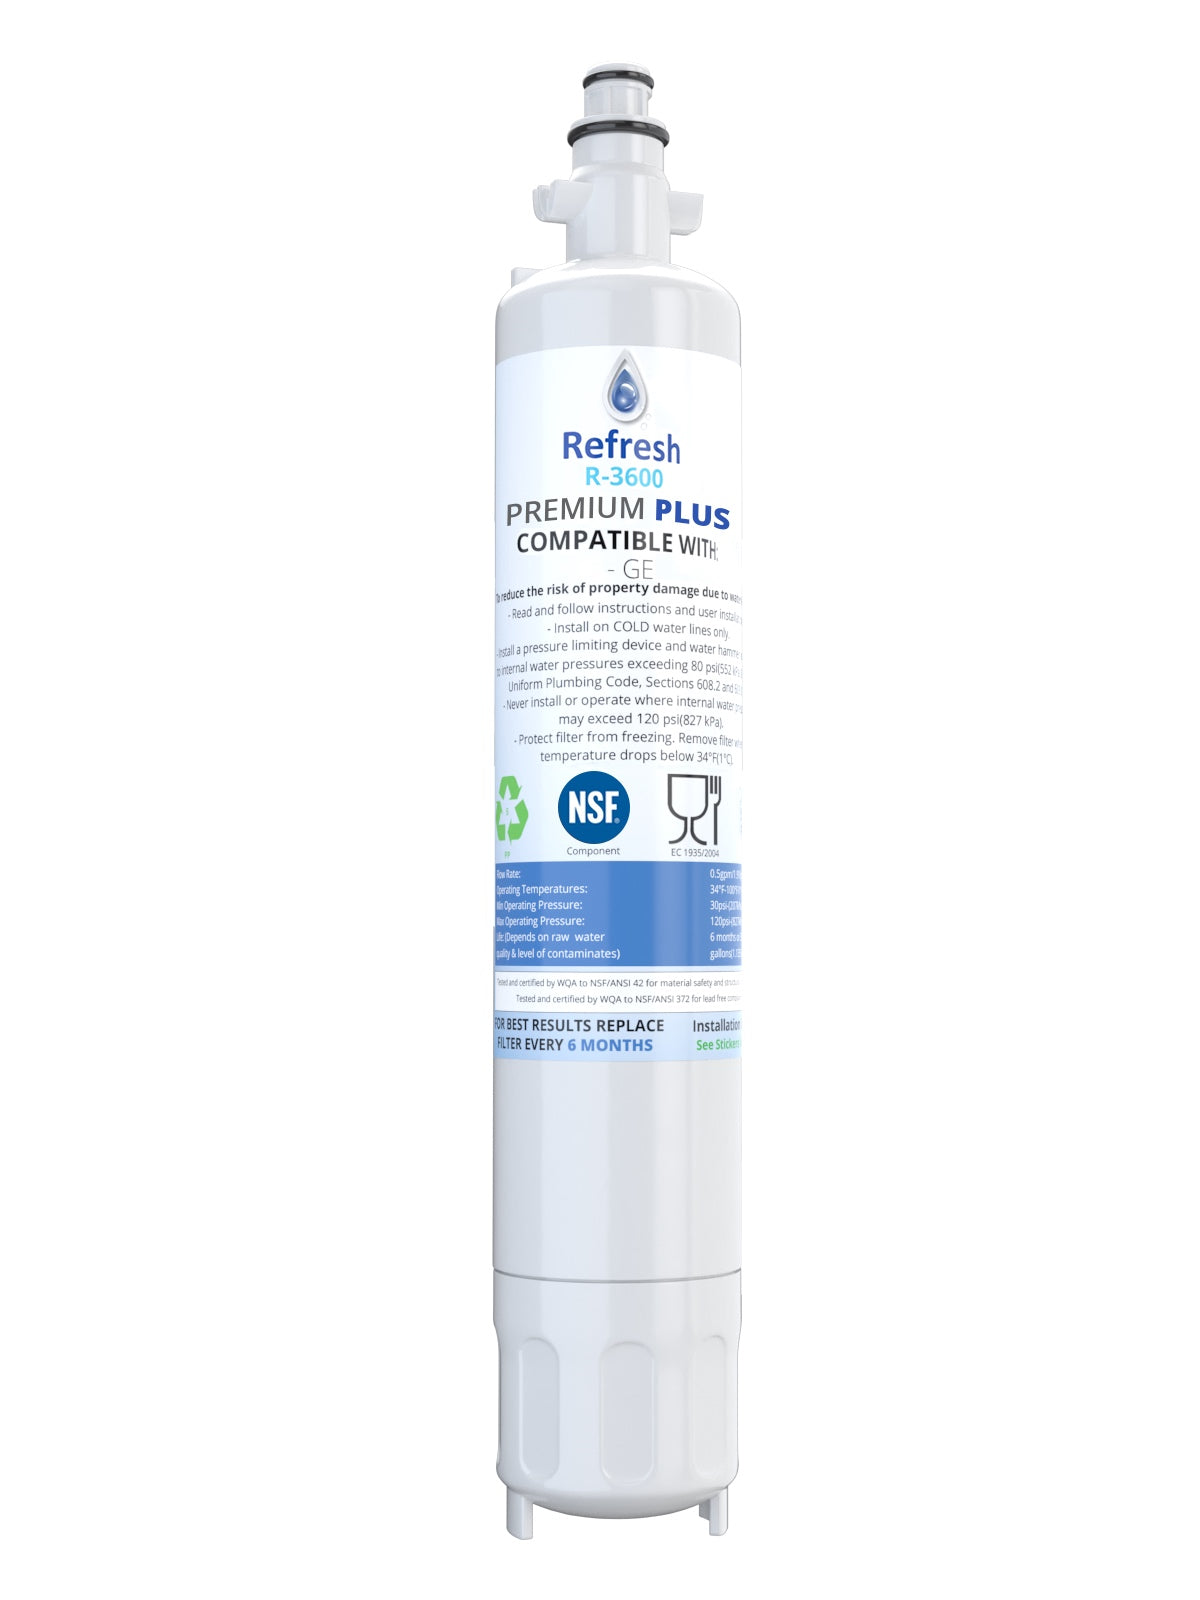 Refresh R-3600-Plus NSF-53 Replacement Refrigerator Filter for GE RPWF, R-3600 and FILTER models RWF1063, RWF3600A, RPWF, WSG-4  and more (does NOT fit RPWFE) !